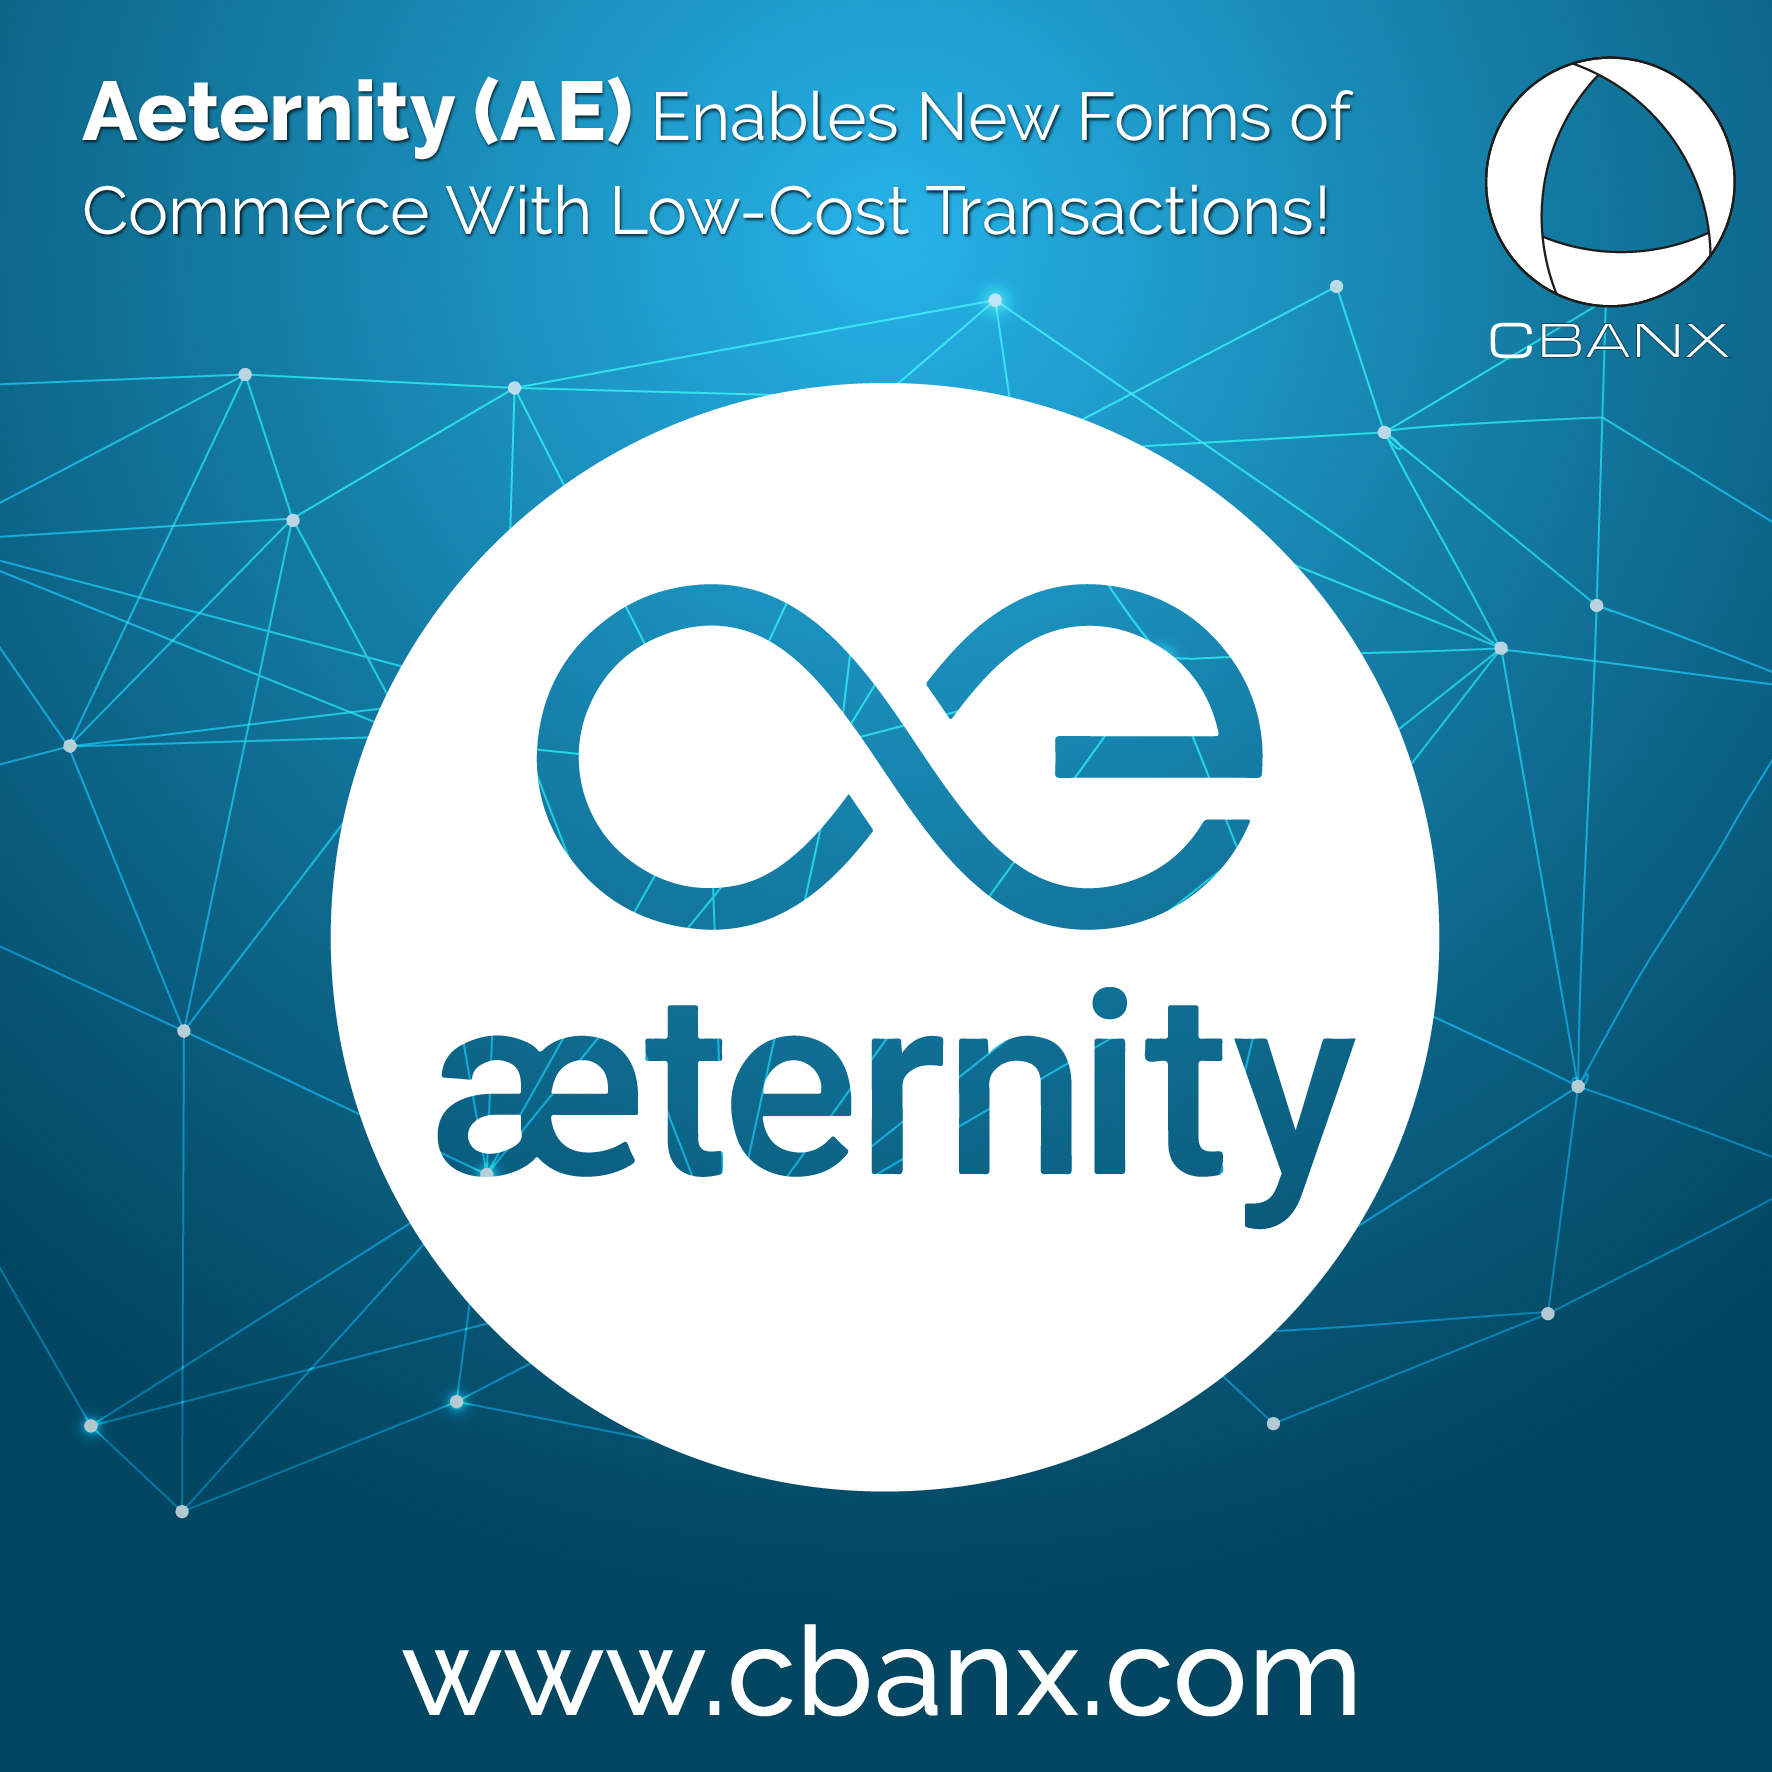 Aeternity (AE) Enables New Forms of Commerce With Low-Cost Transactions!